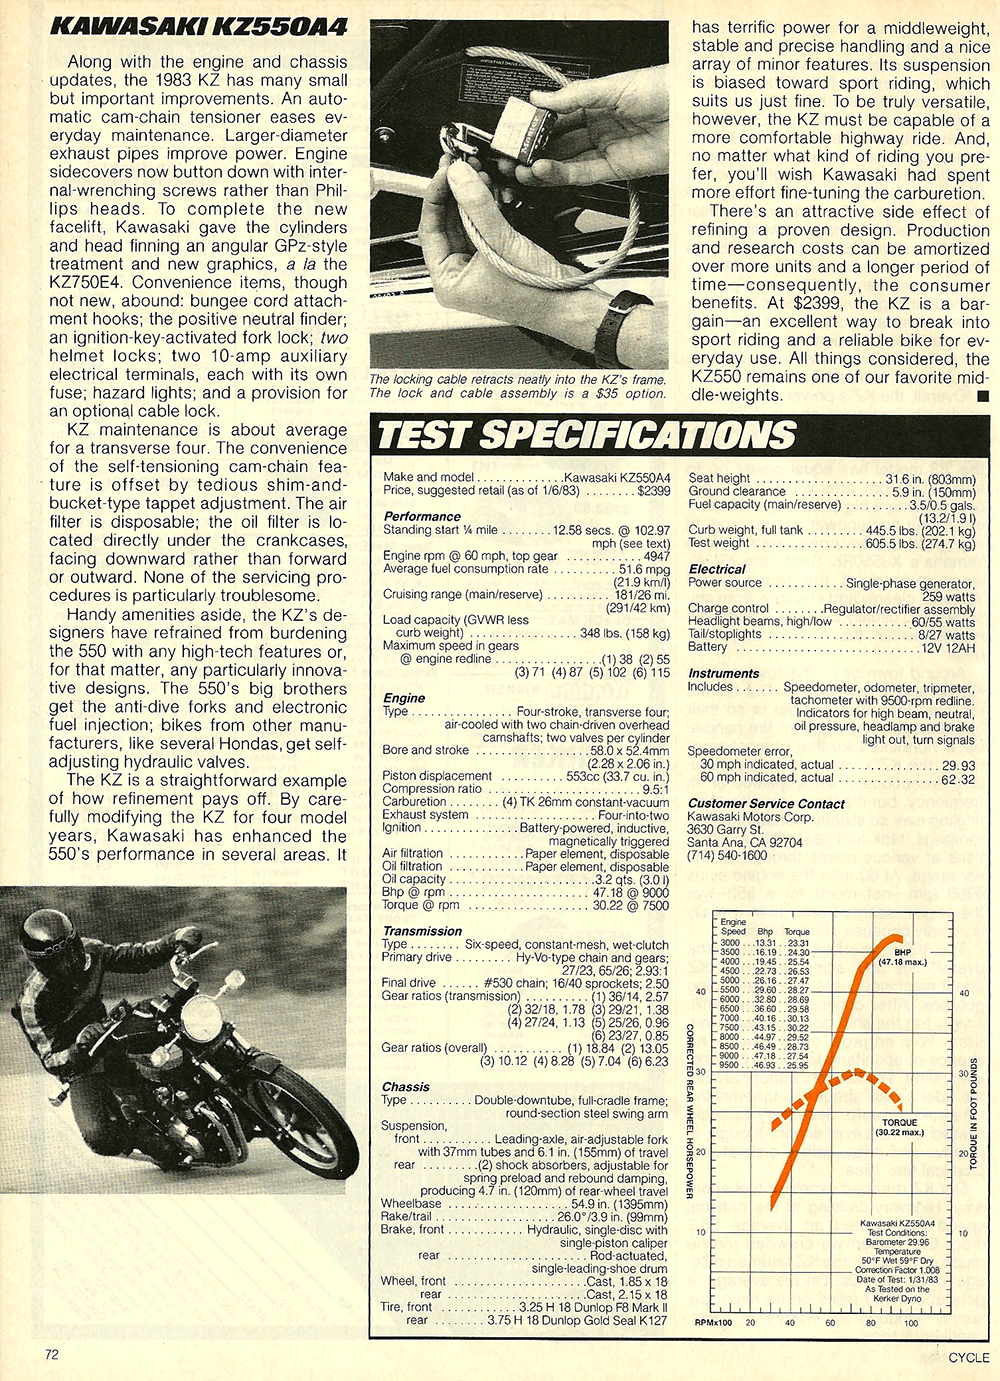 1983 Kawasaki KZ550 A4 road test 8.jpg